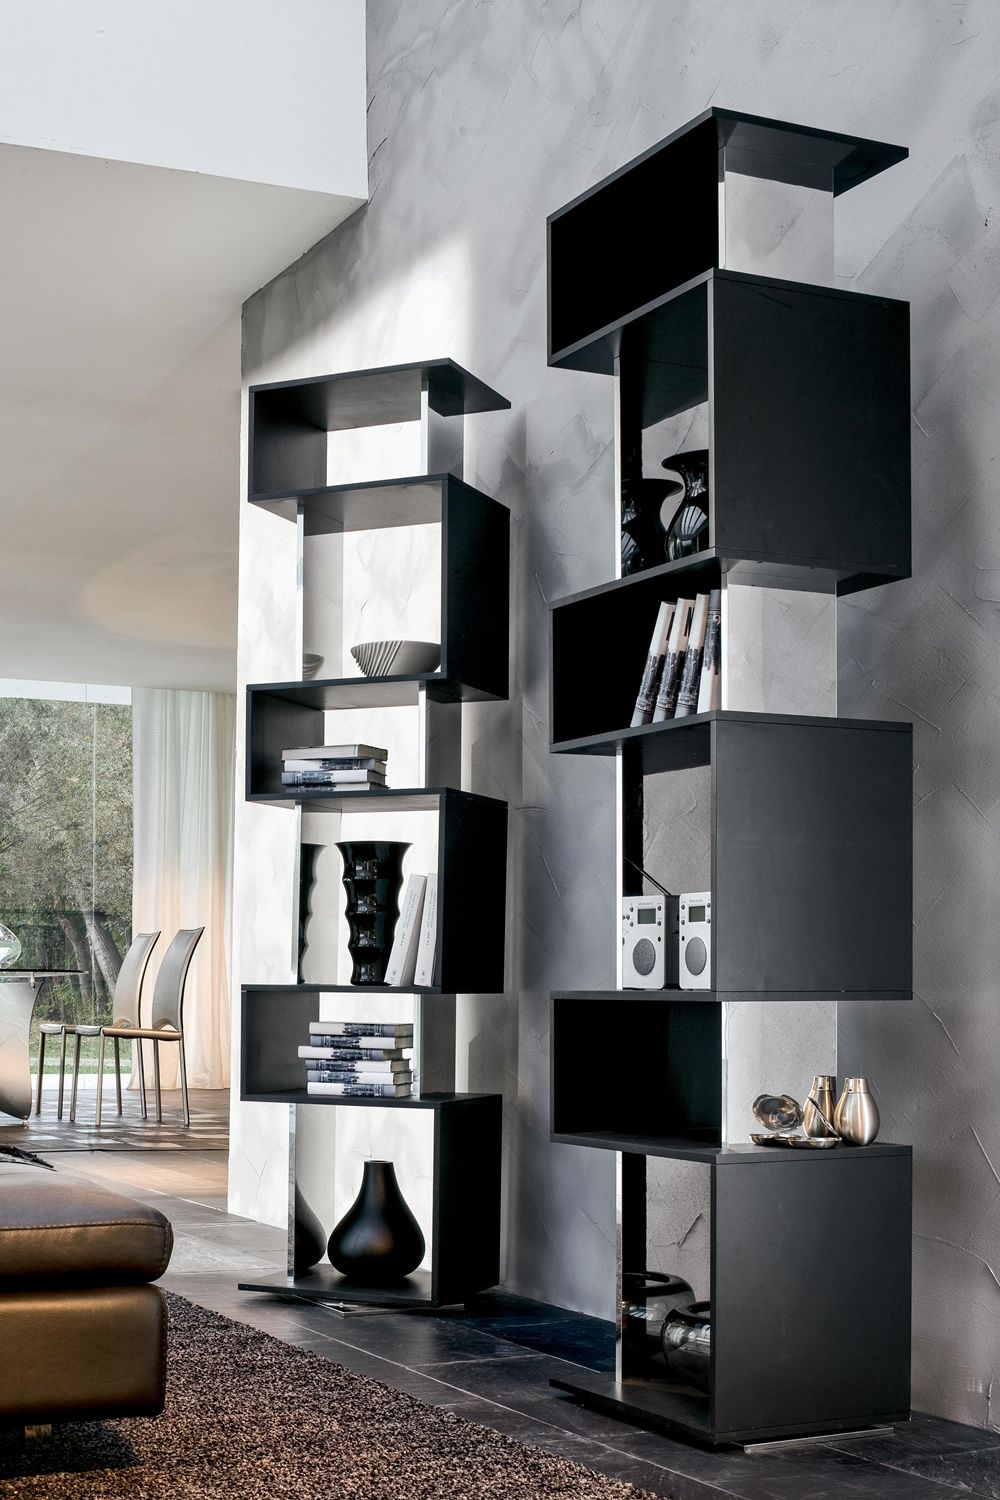 osuna 7241 biblioth que pivotant tonin casa en plaqu en diff rentes couleurs sediarreda. Black Bedroom Furniture Sets. Home Design Ideas